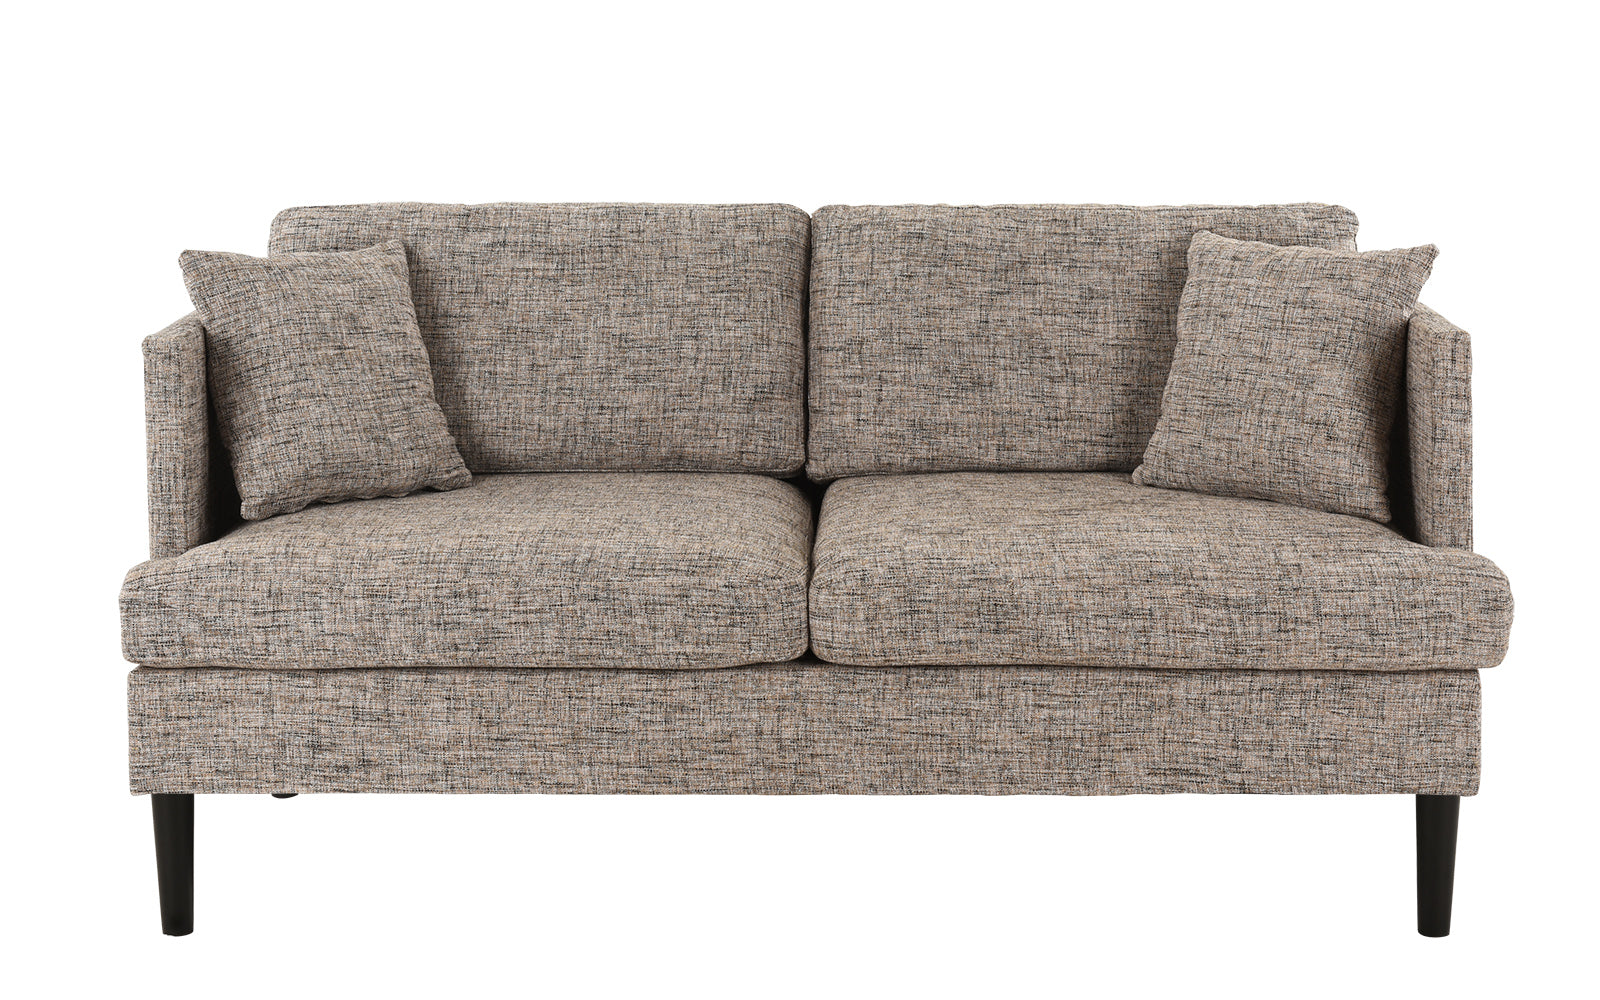 Delicieux August Modern Loveseat Sofa With Wooden Legs